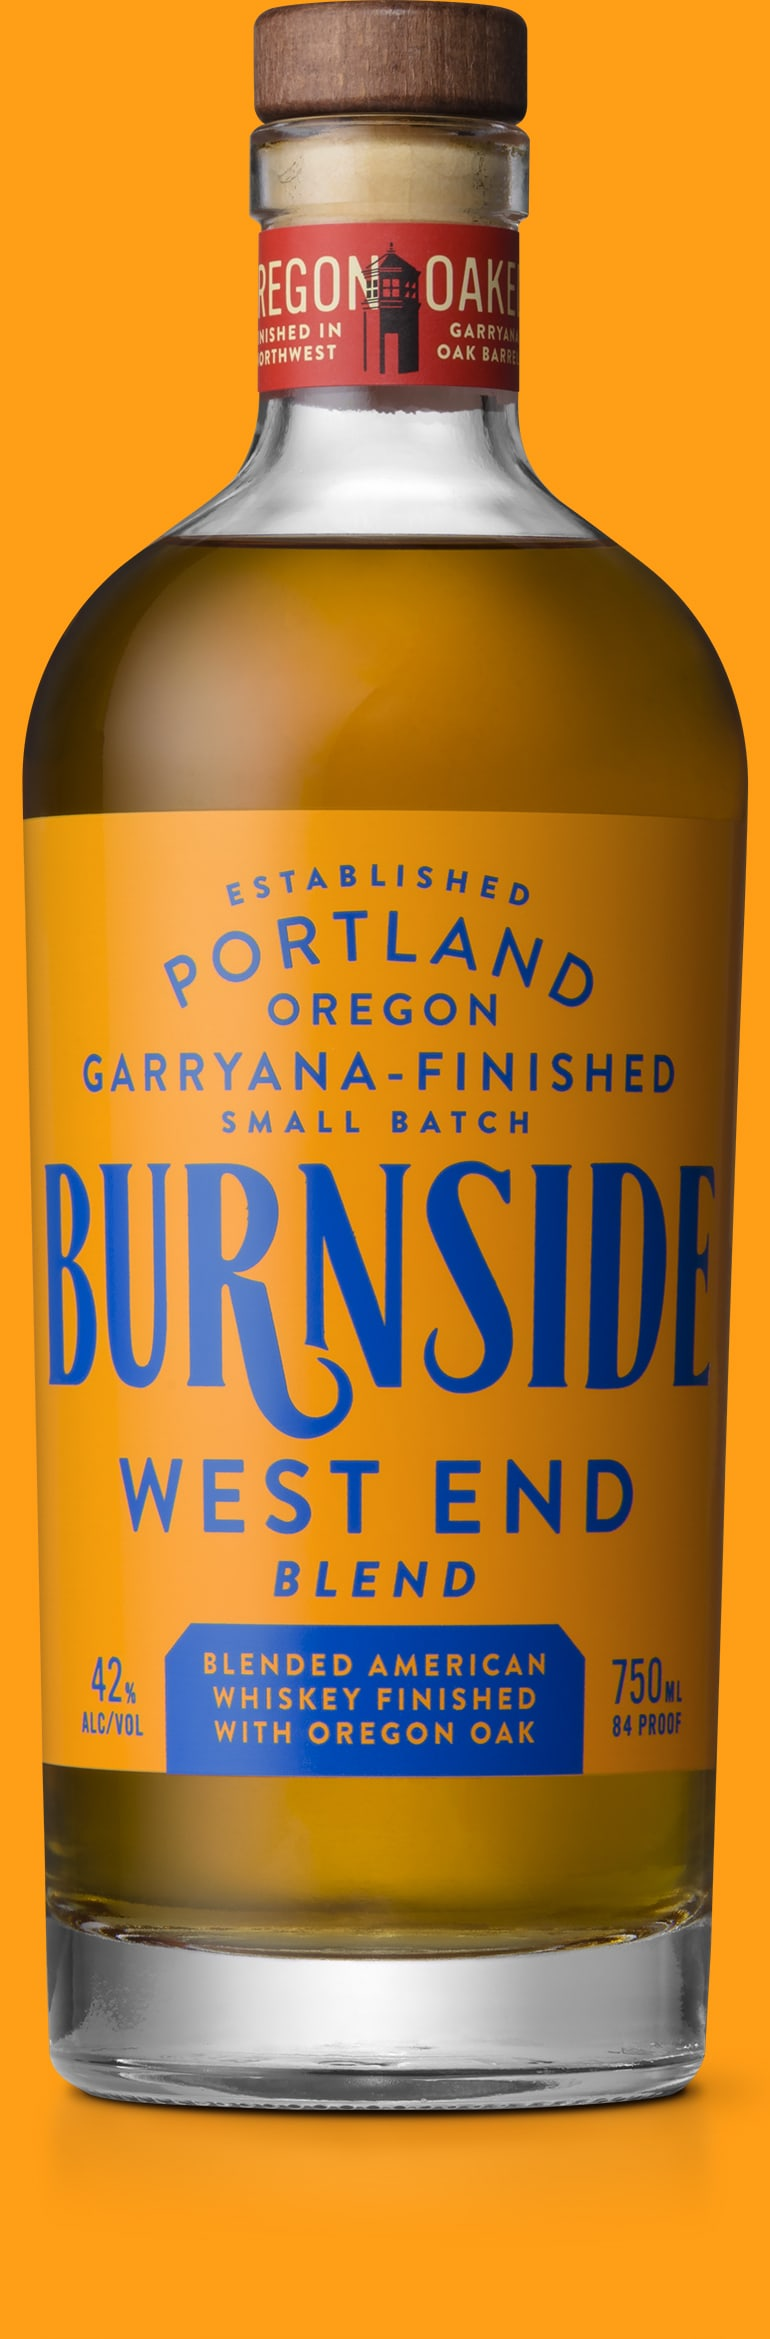 Burnside West End Blend